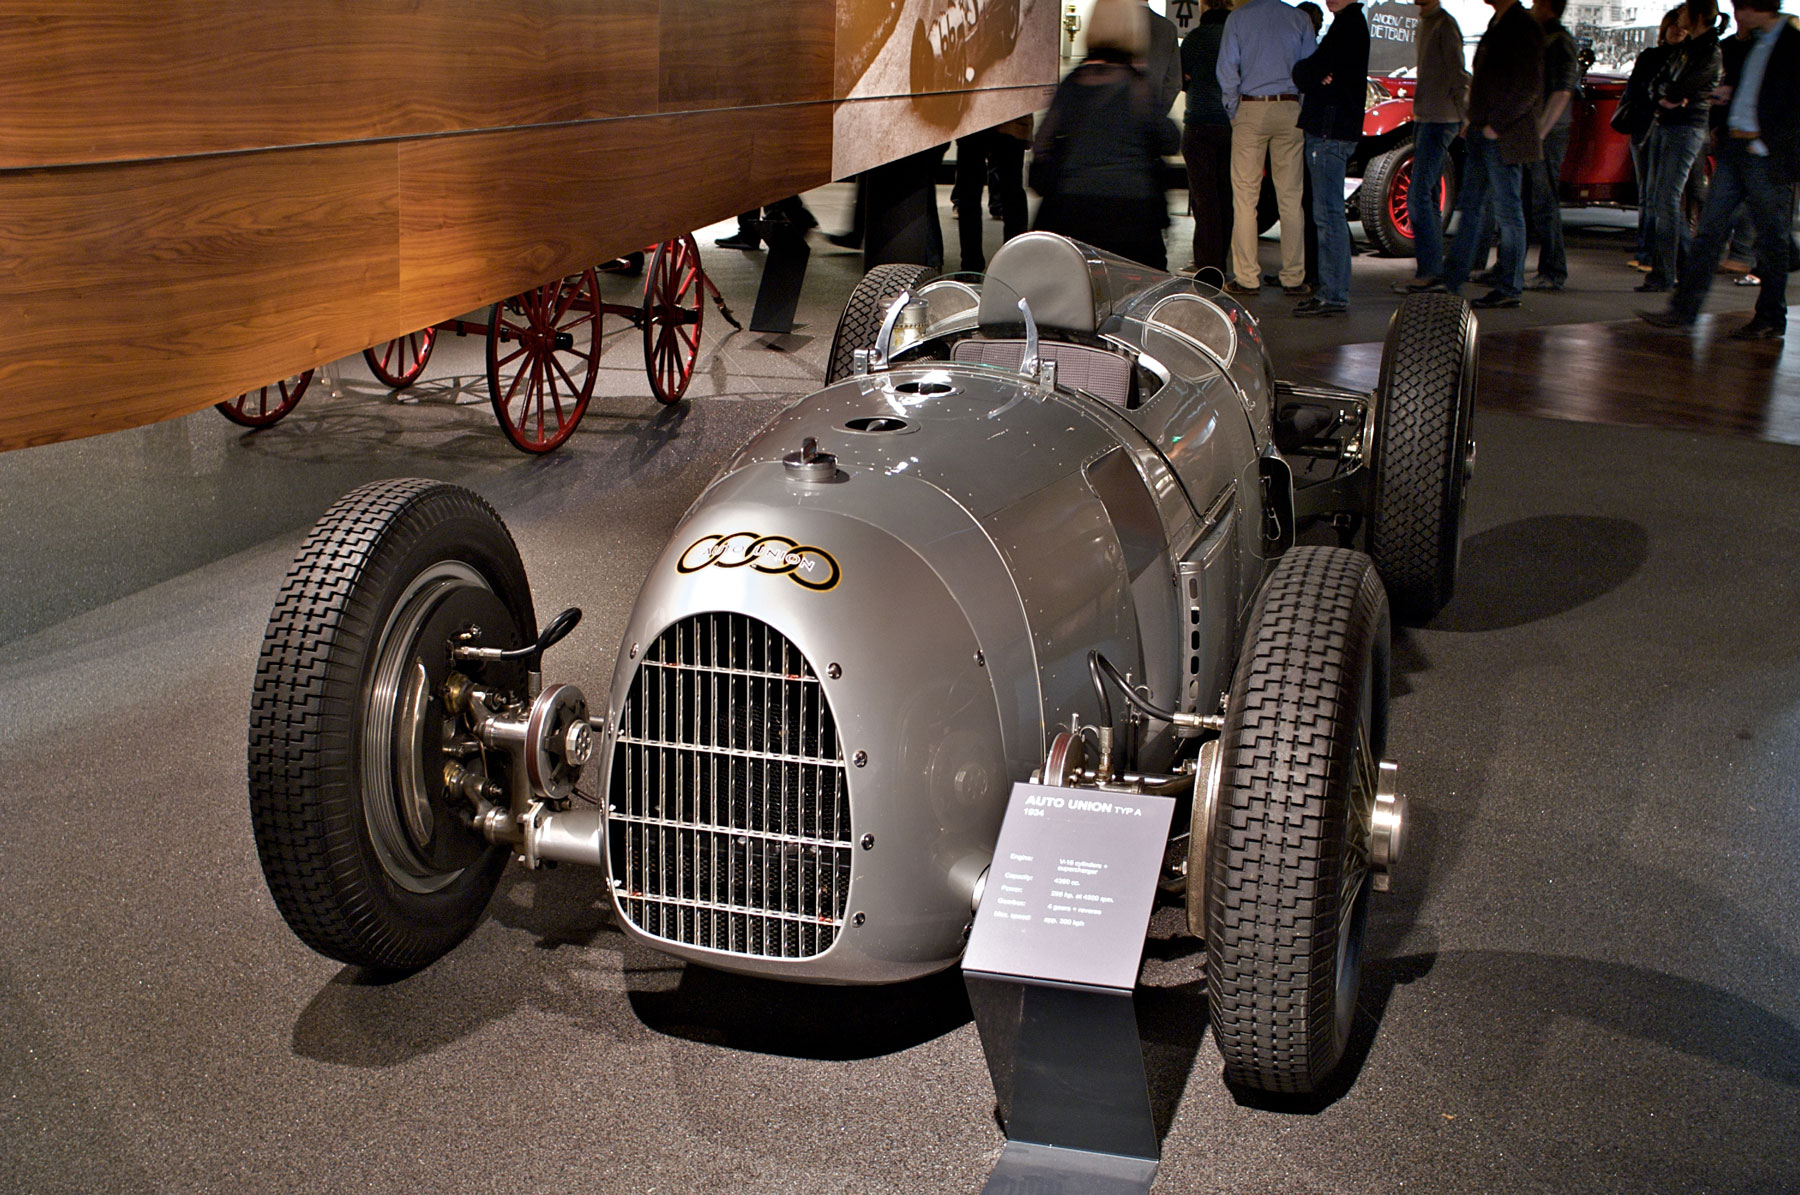 1934 Auto Union Type A replica in a museum